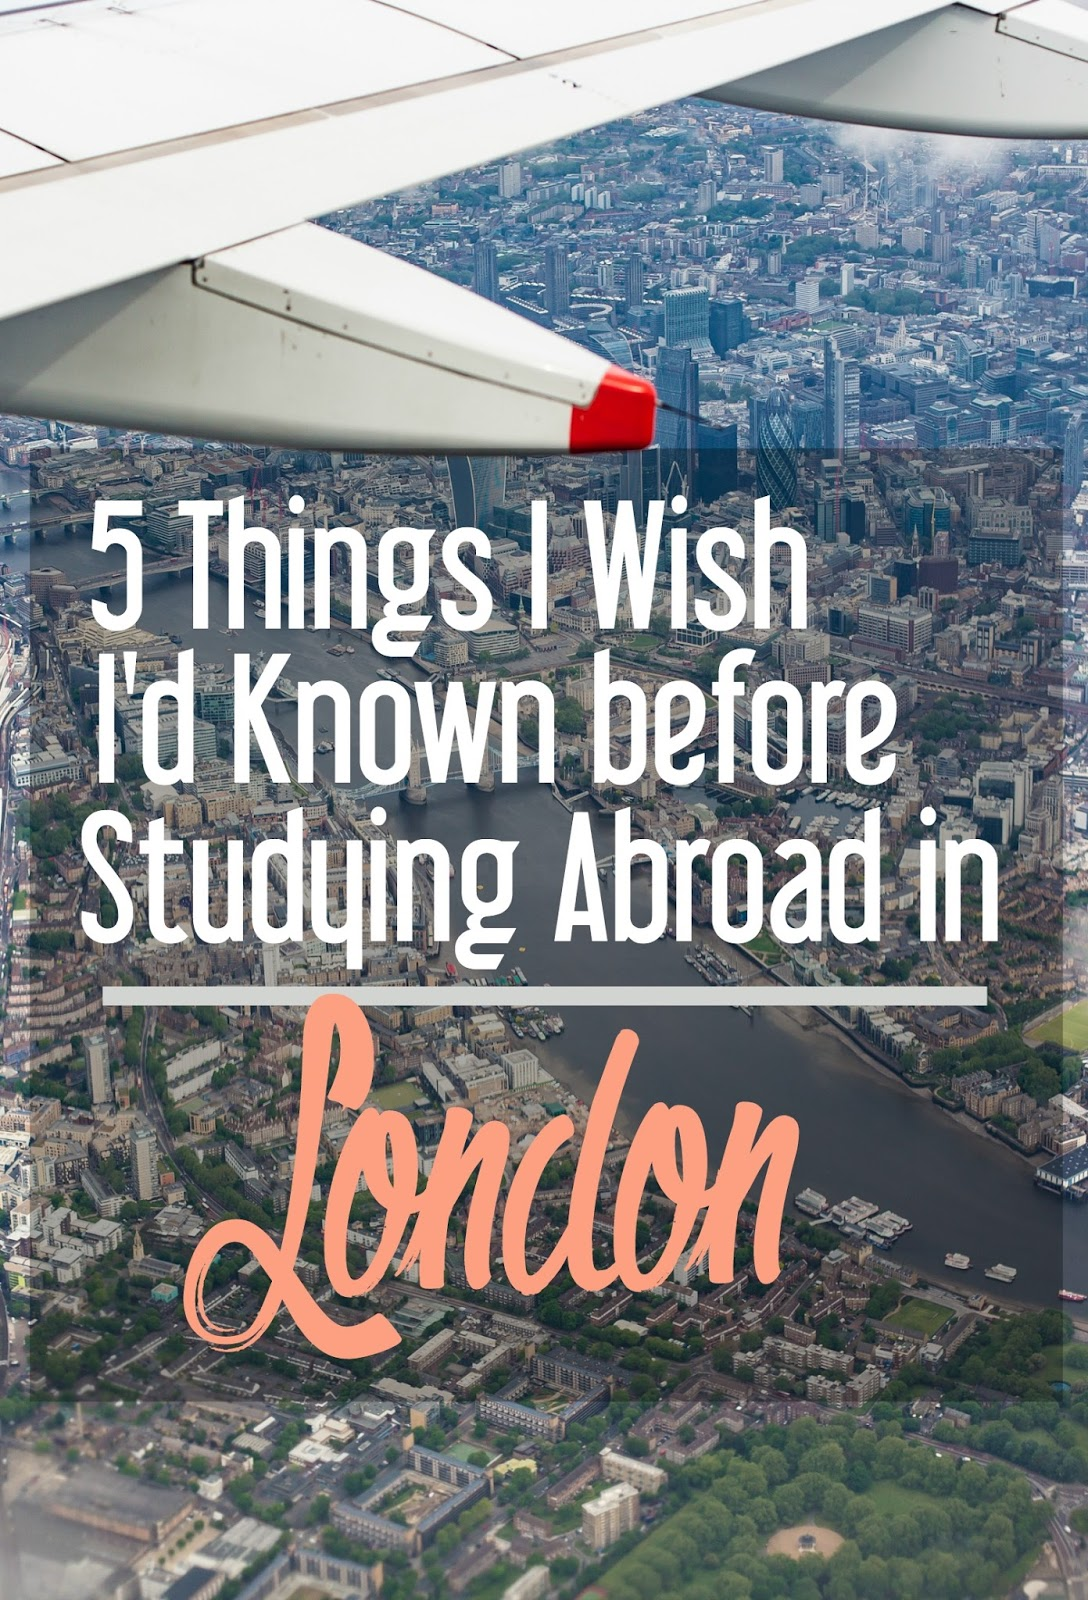 5 Things I Wish I'd Known before Studying Abroad in London